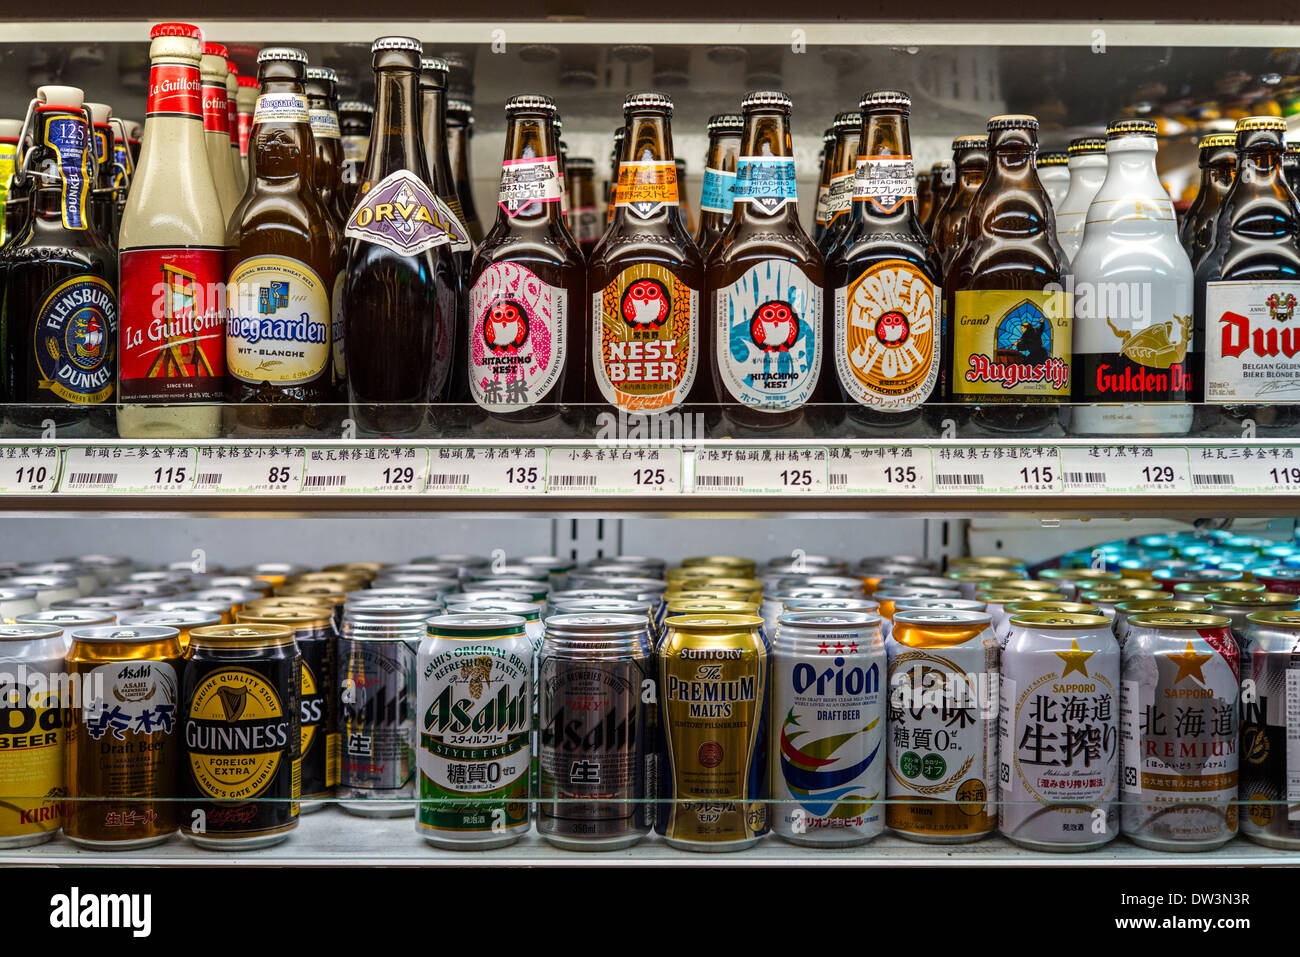 Selection of Beers in Taipei Supermarket, Taiwan - Stock Image